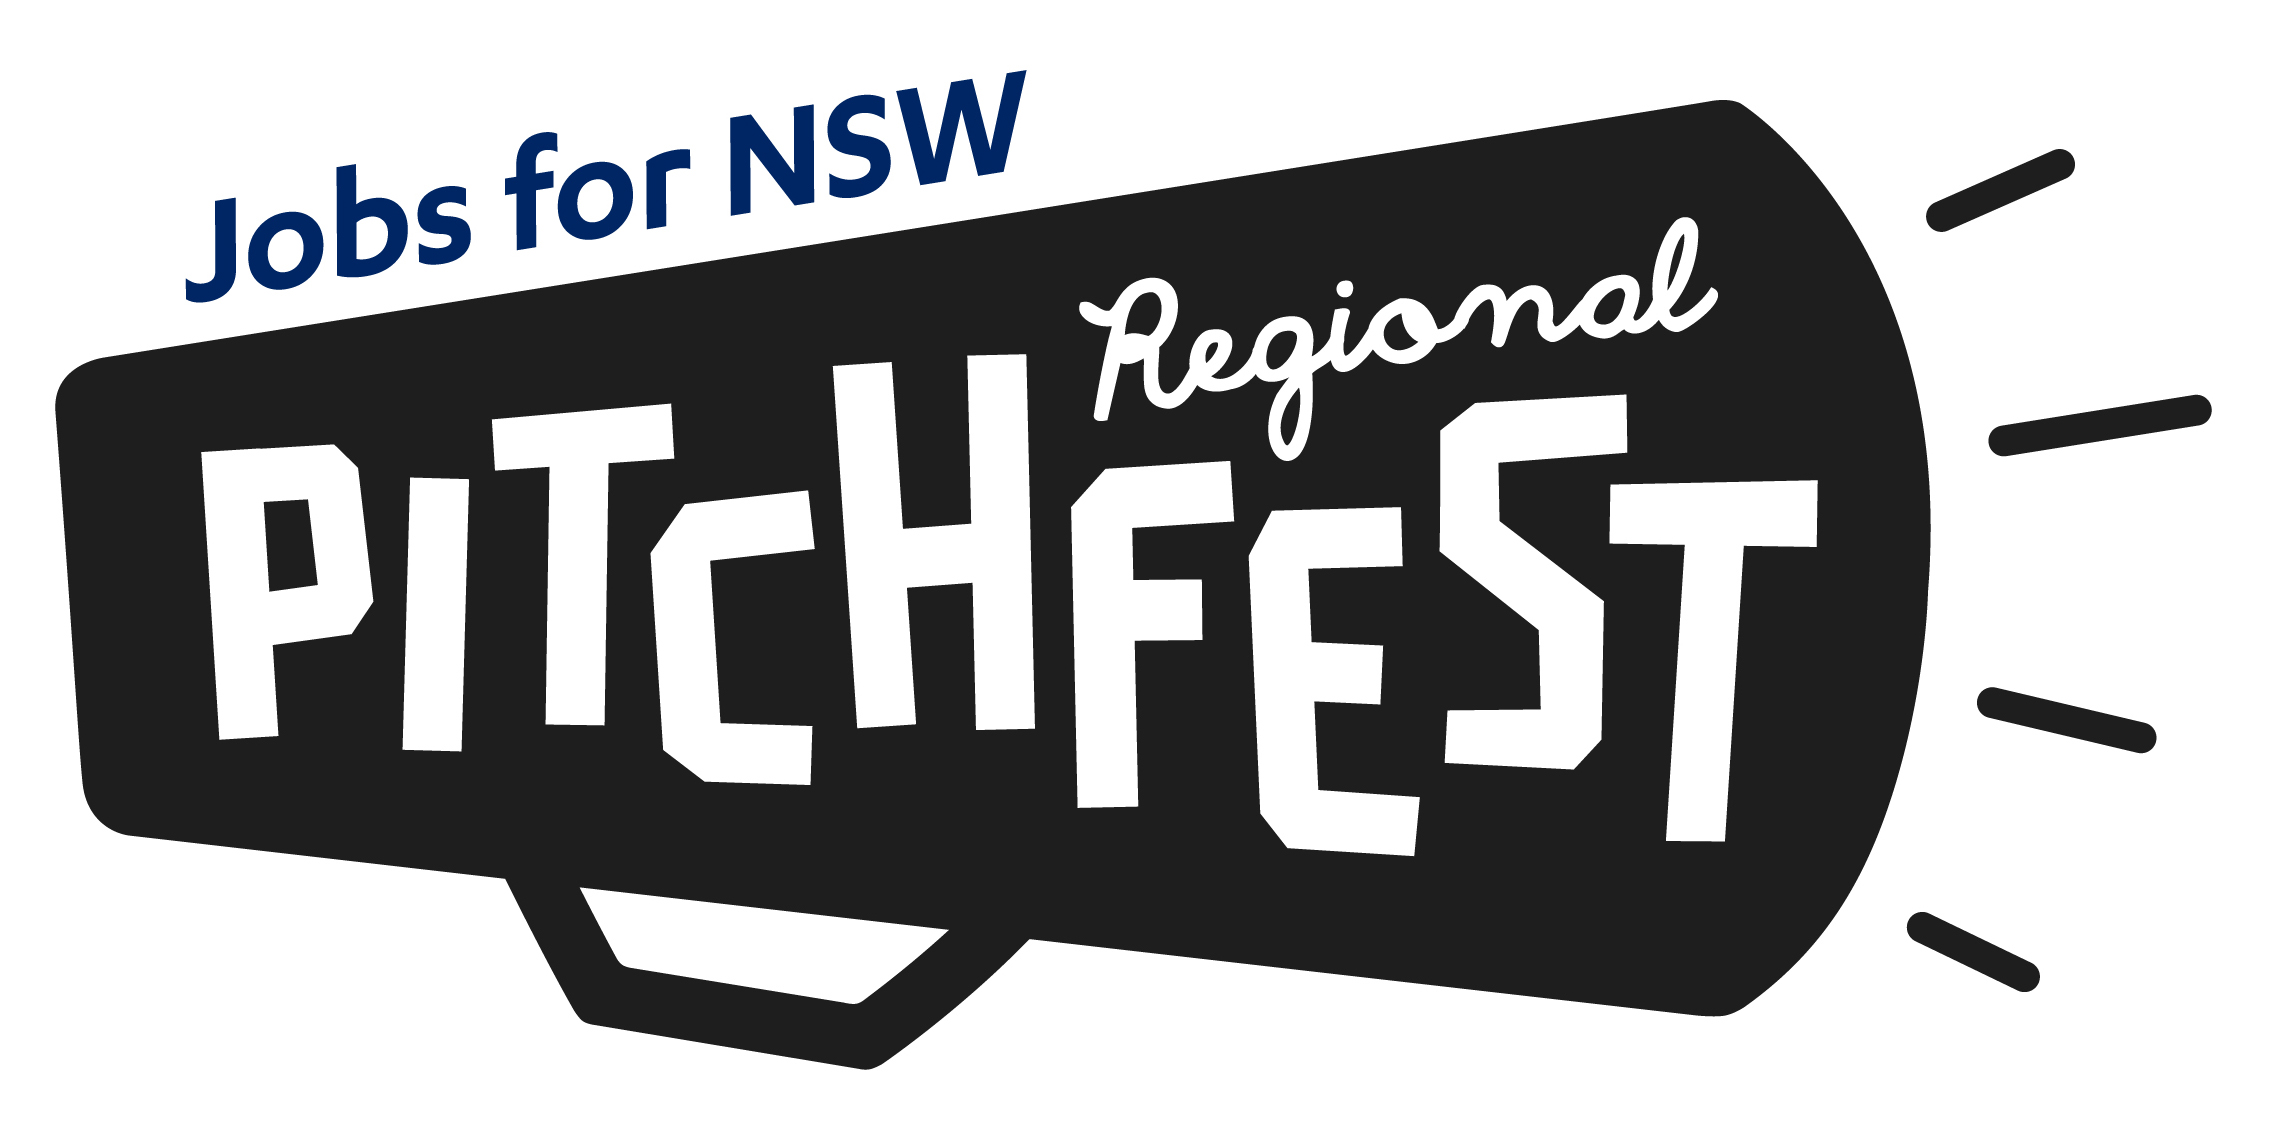 Pitchfest-Jobs-NSW-RGB-Mainedit.jpg